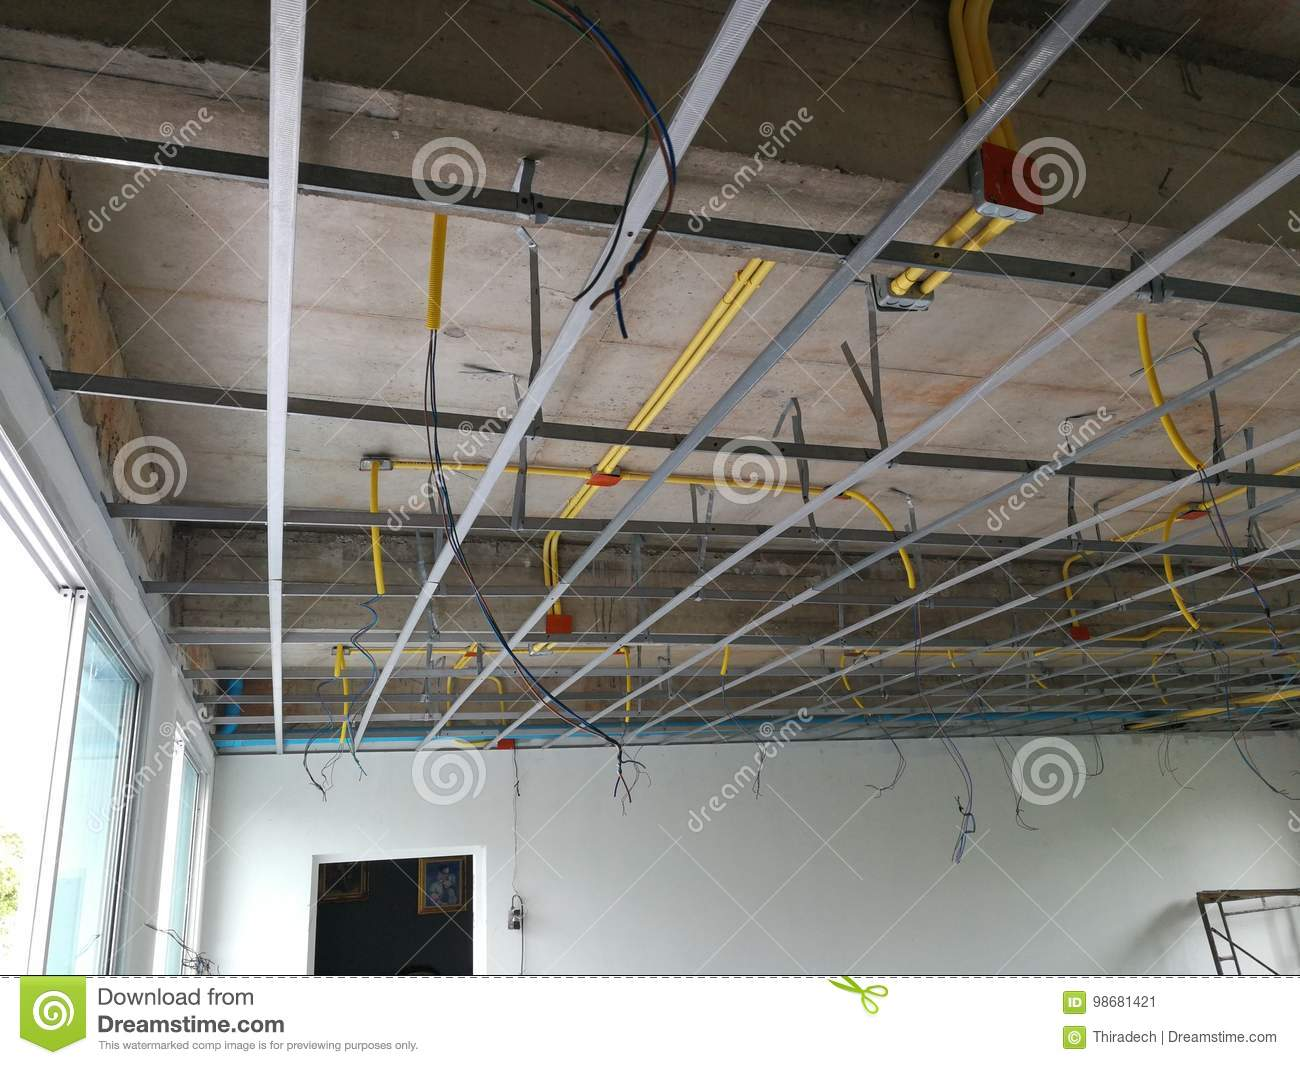 Superb Install The Ceiling Frame And Wiring Pipe Stock Image Image Of Wiring Cloud Nuvitbieswglorg